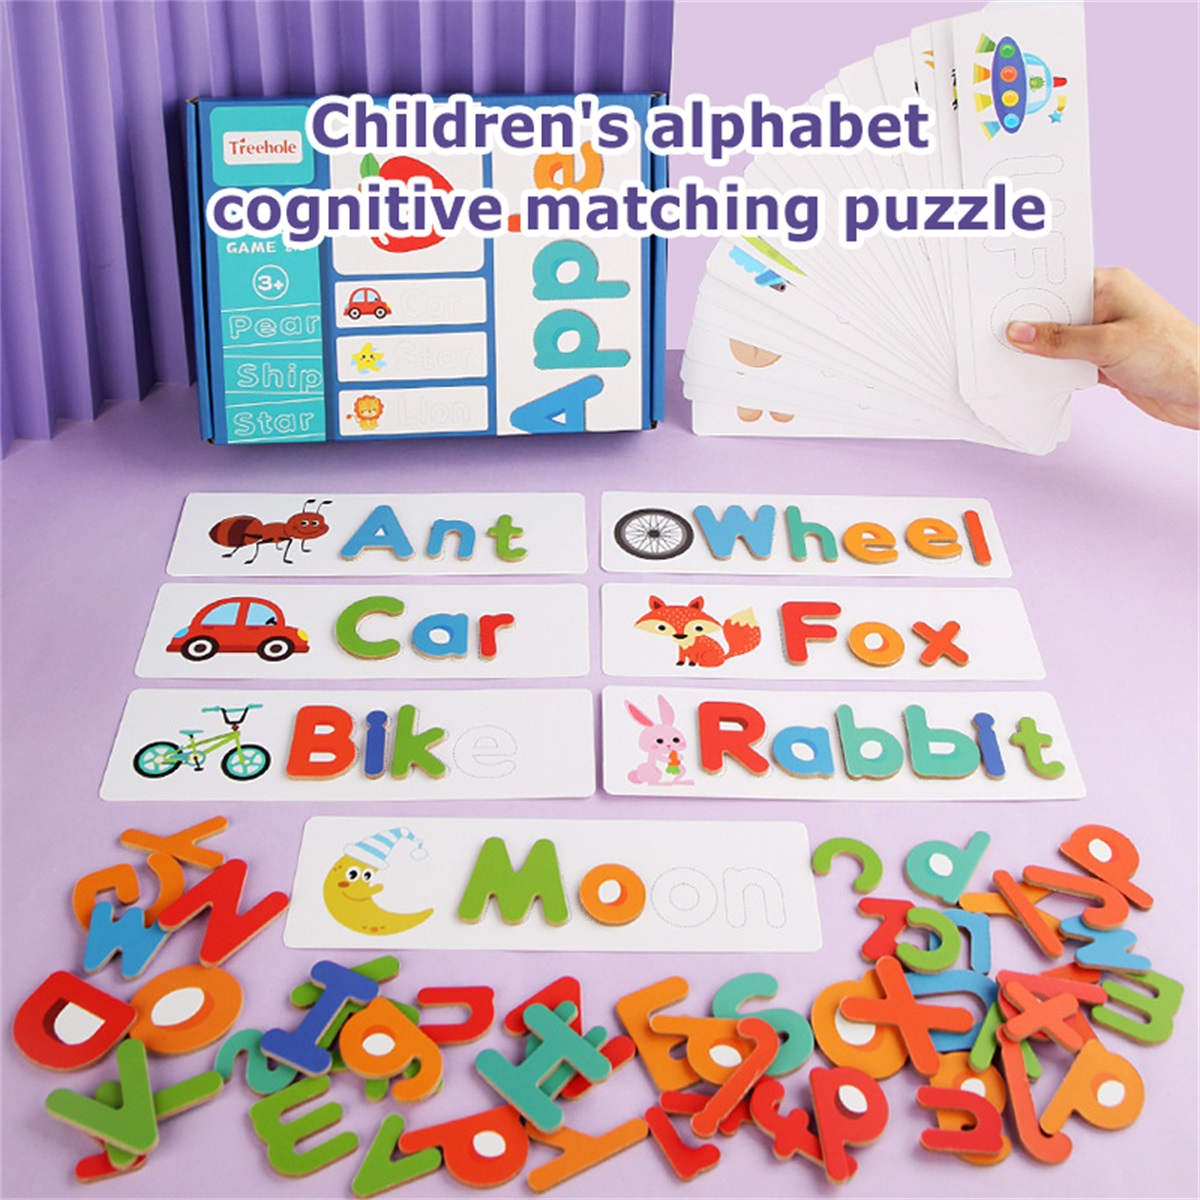 DC-JU See and Spelling Learning Toy Wooden Letter ABC Games Toys Develops Alphabet Words Spelling Skills Letter Block for 2 3 4 5 Year Old Boy//Girl Birthday Gift Toys for 2 3 4 5 Year Old Boys//Girls